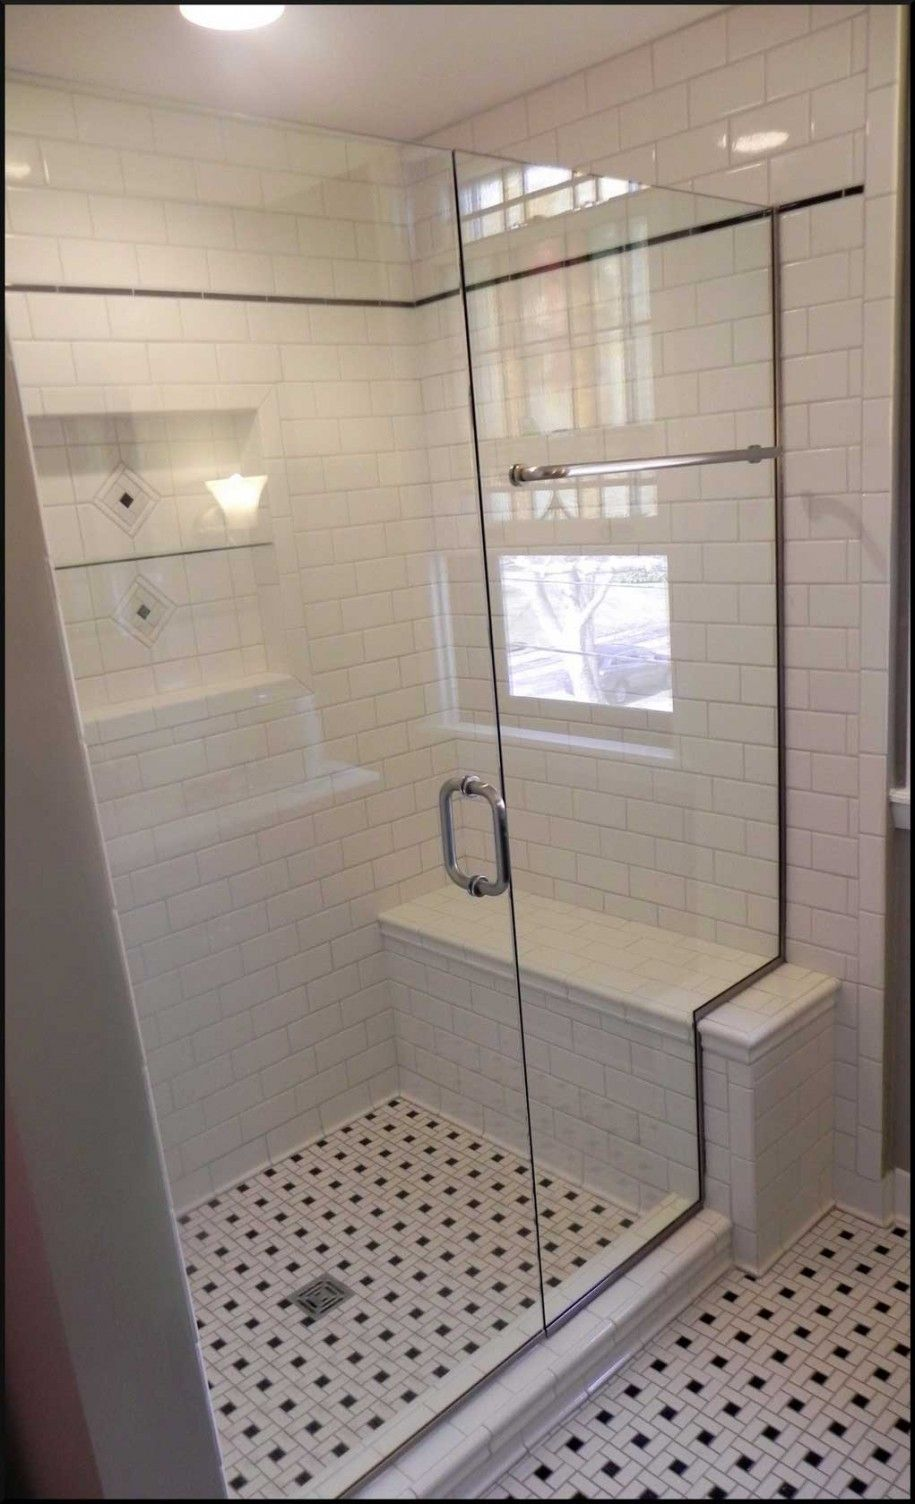 tiled shower seat design. Small Bathroom Window Design with Black and White Floor Tile Ideas Plus  Cosy Shower Bench Also